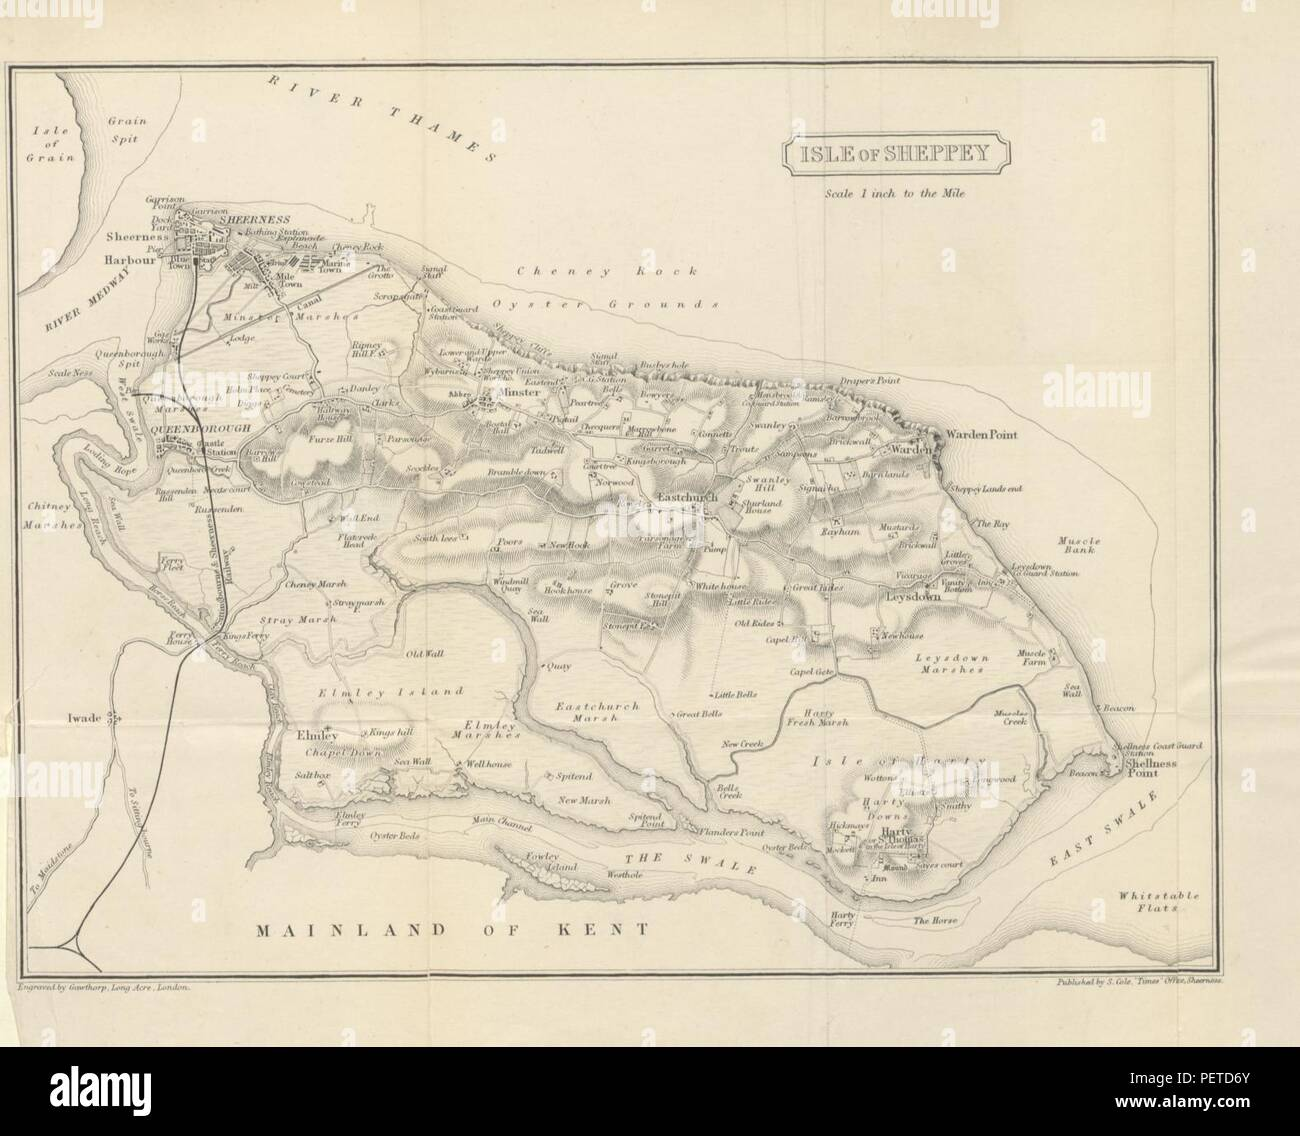 Europe Maps Art Large 1939 Map Thames Estuary Medway Southend-on-sea Sheerness Margate Clacton